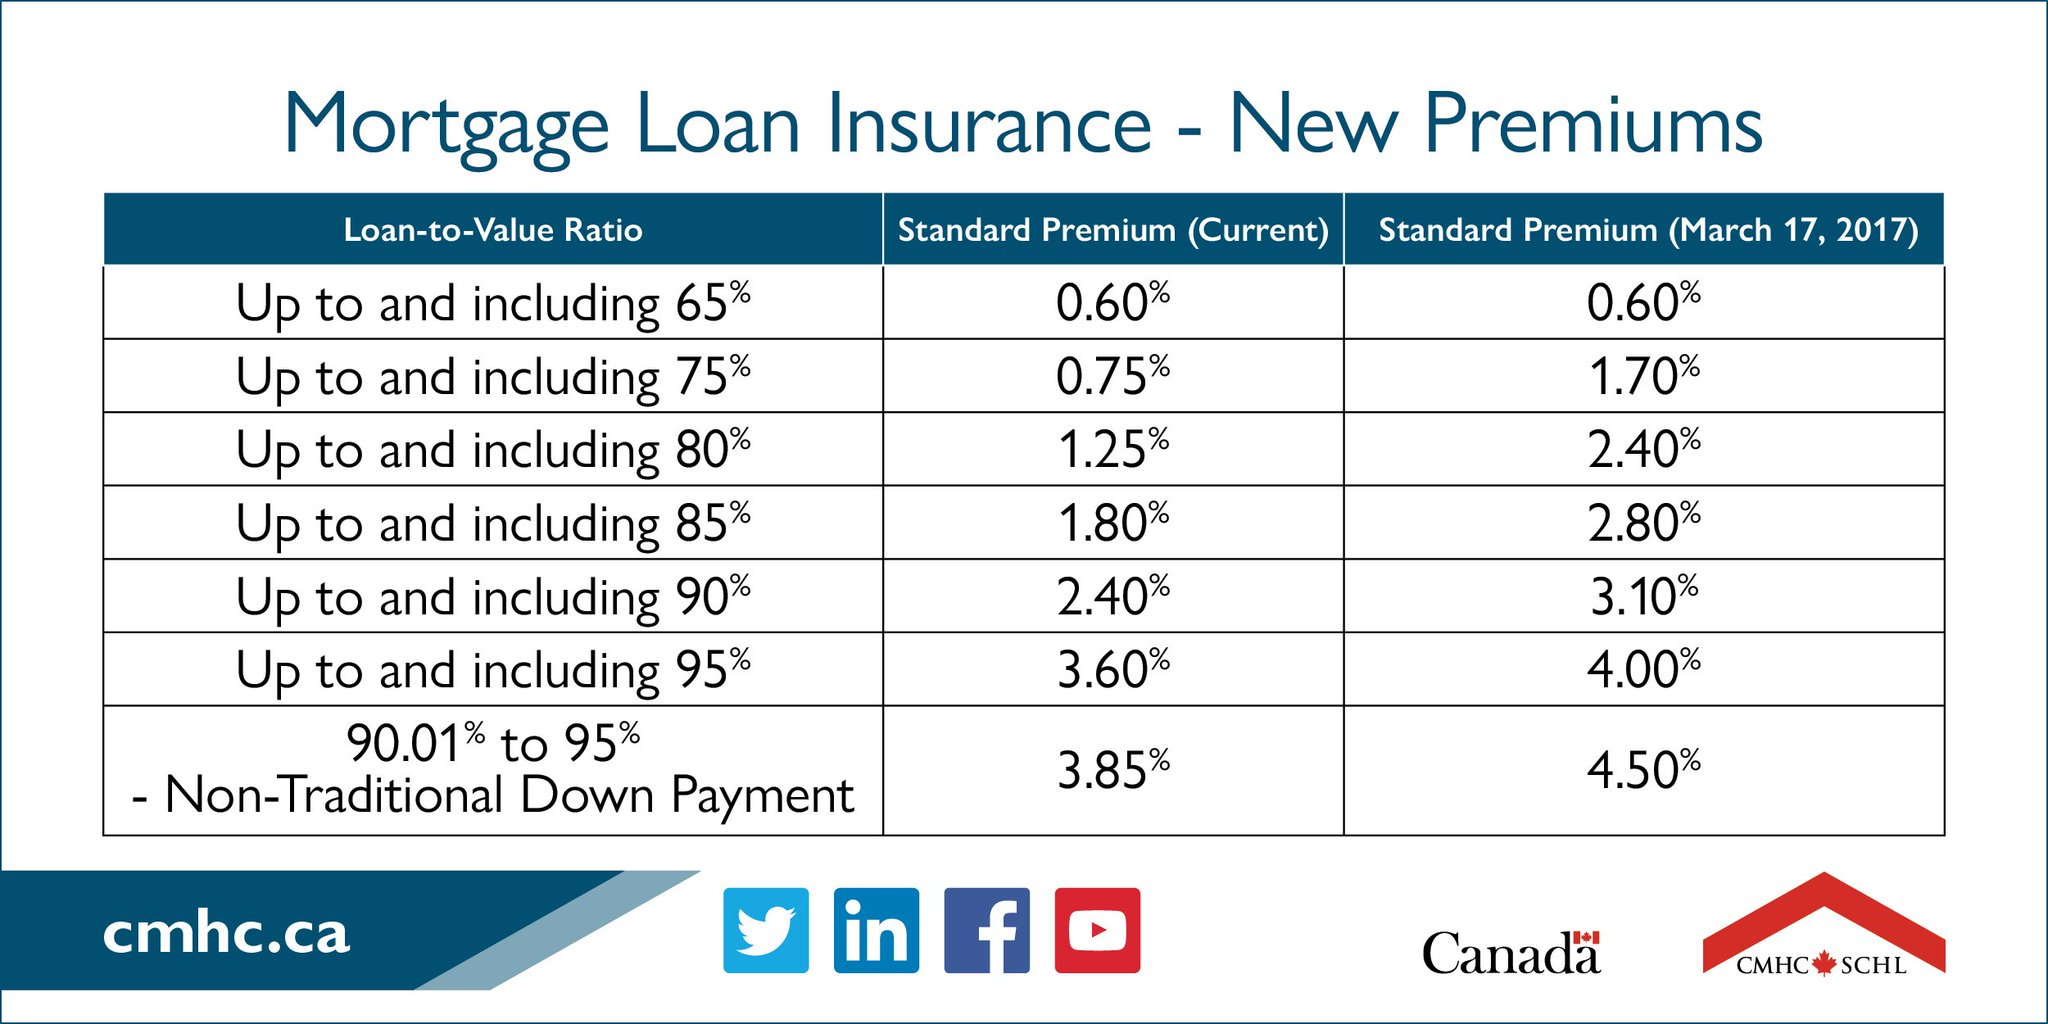 CMHC to Increase Mortgage Insurance Premiums